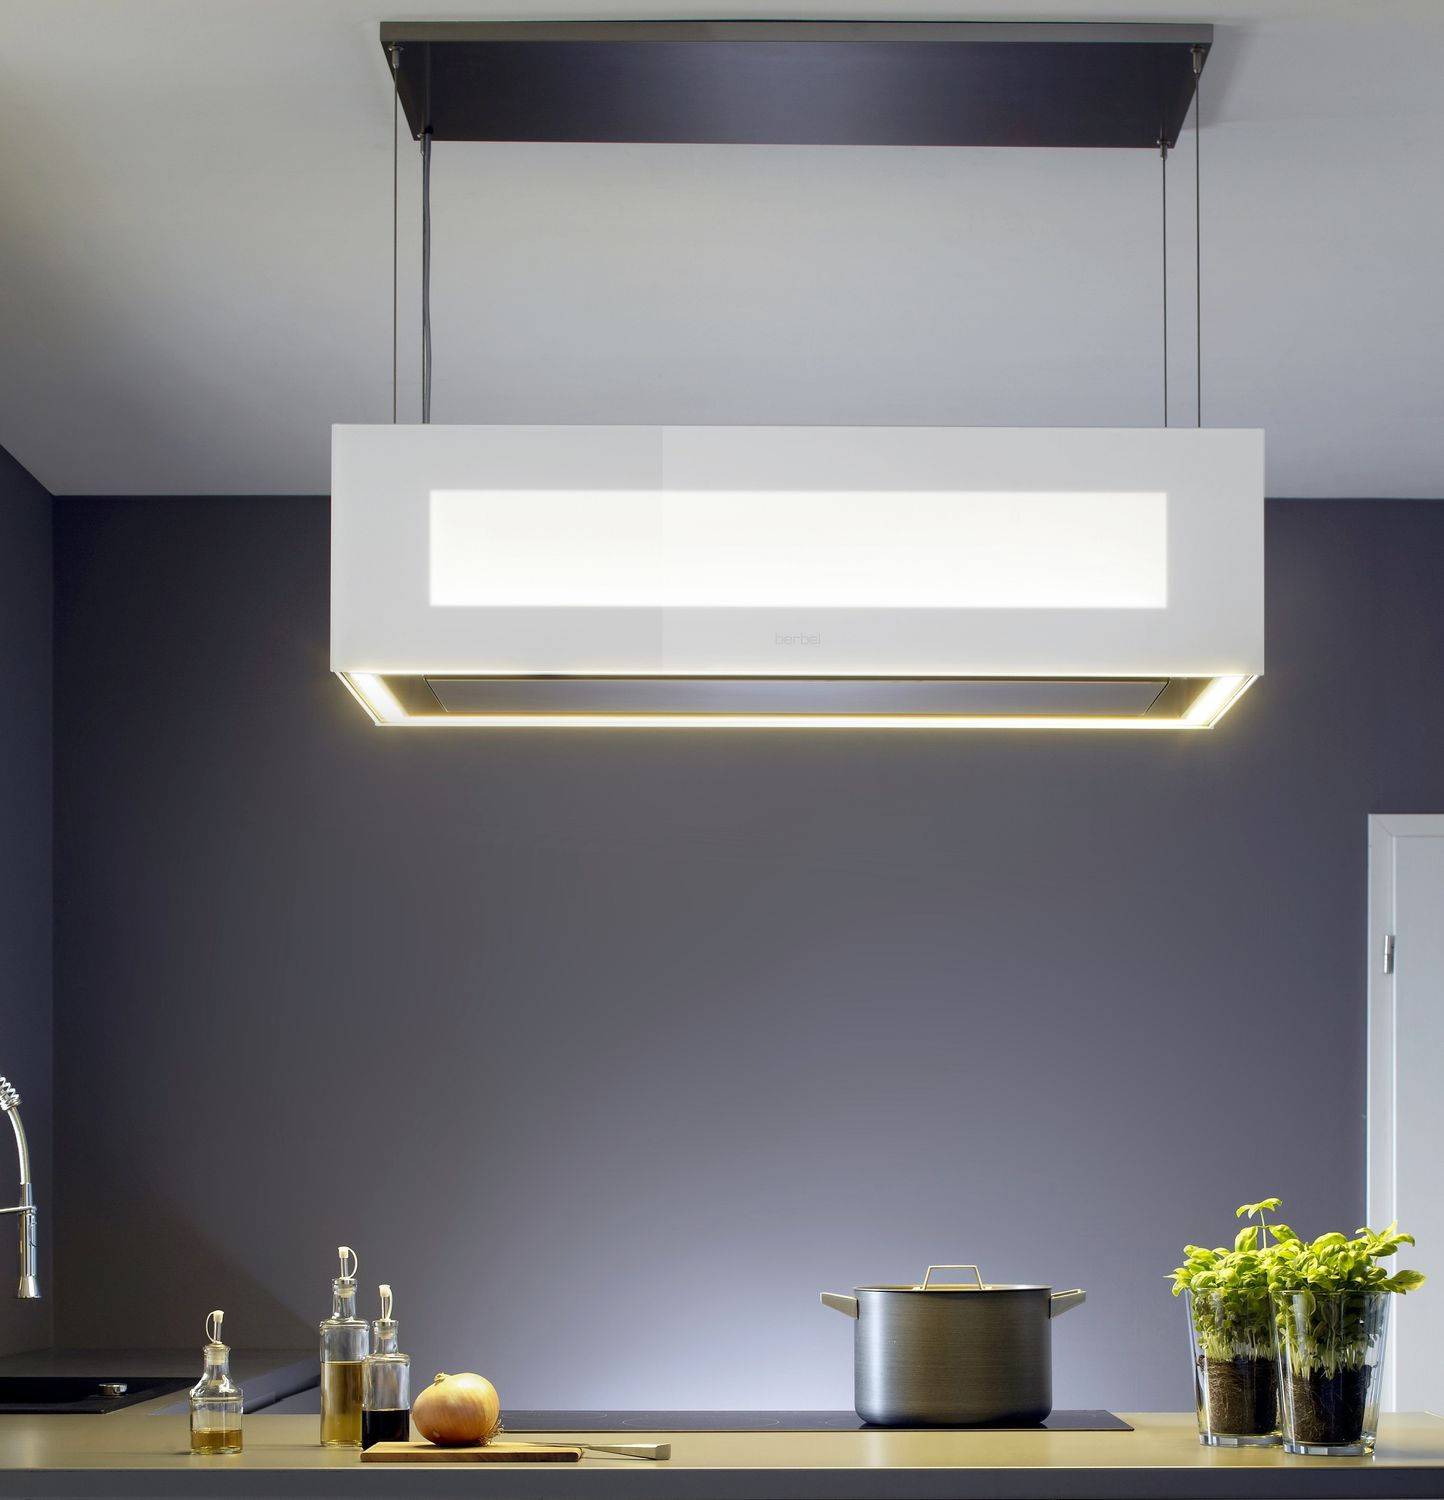 Island Range Hood Original Design With Built In Lighting